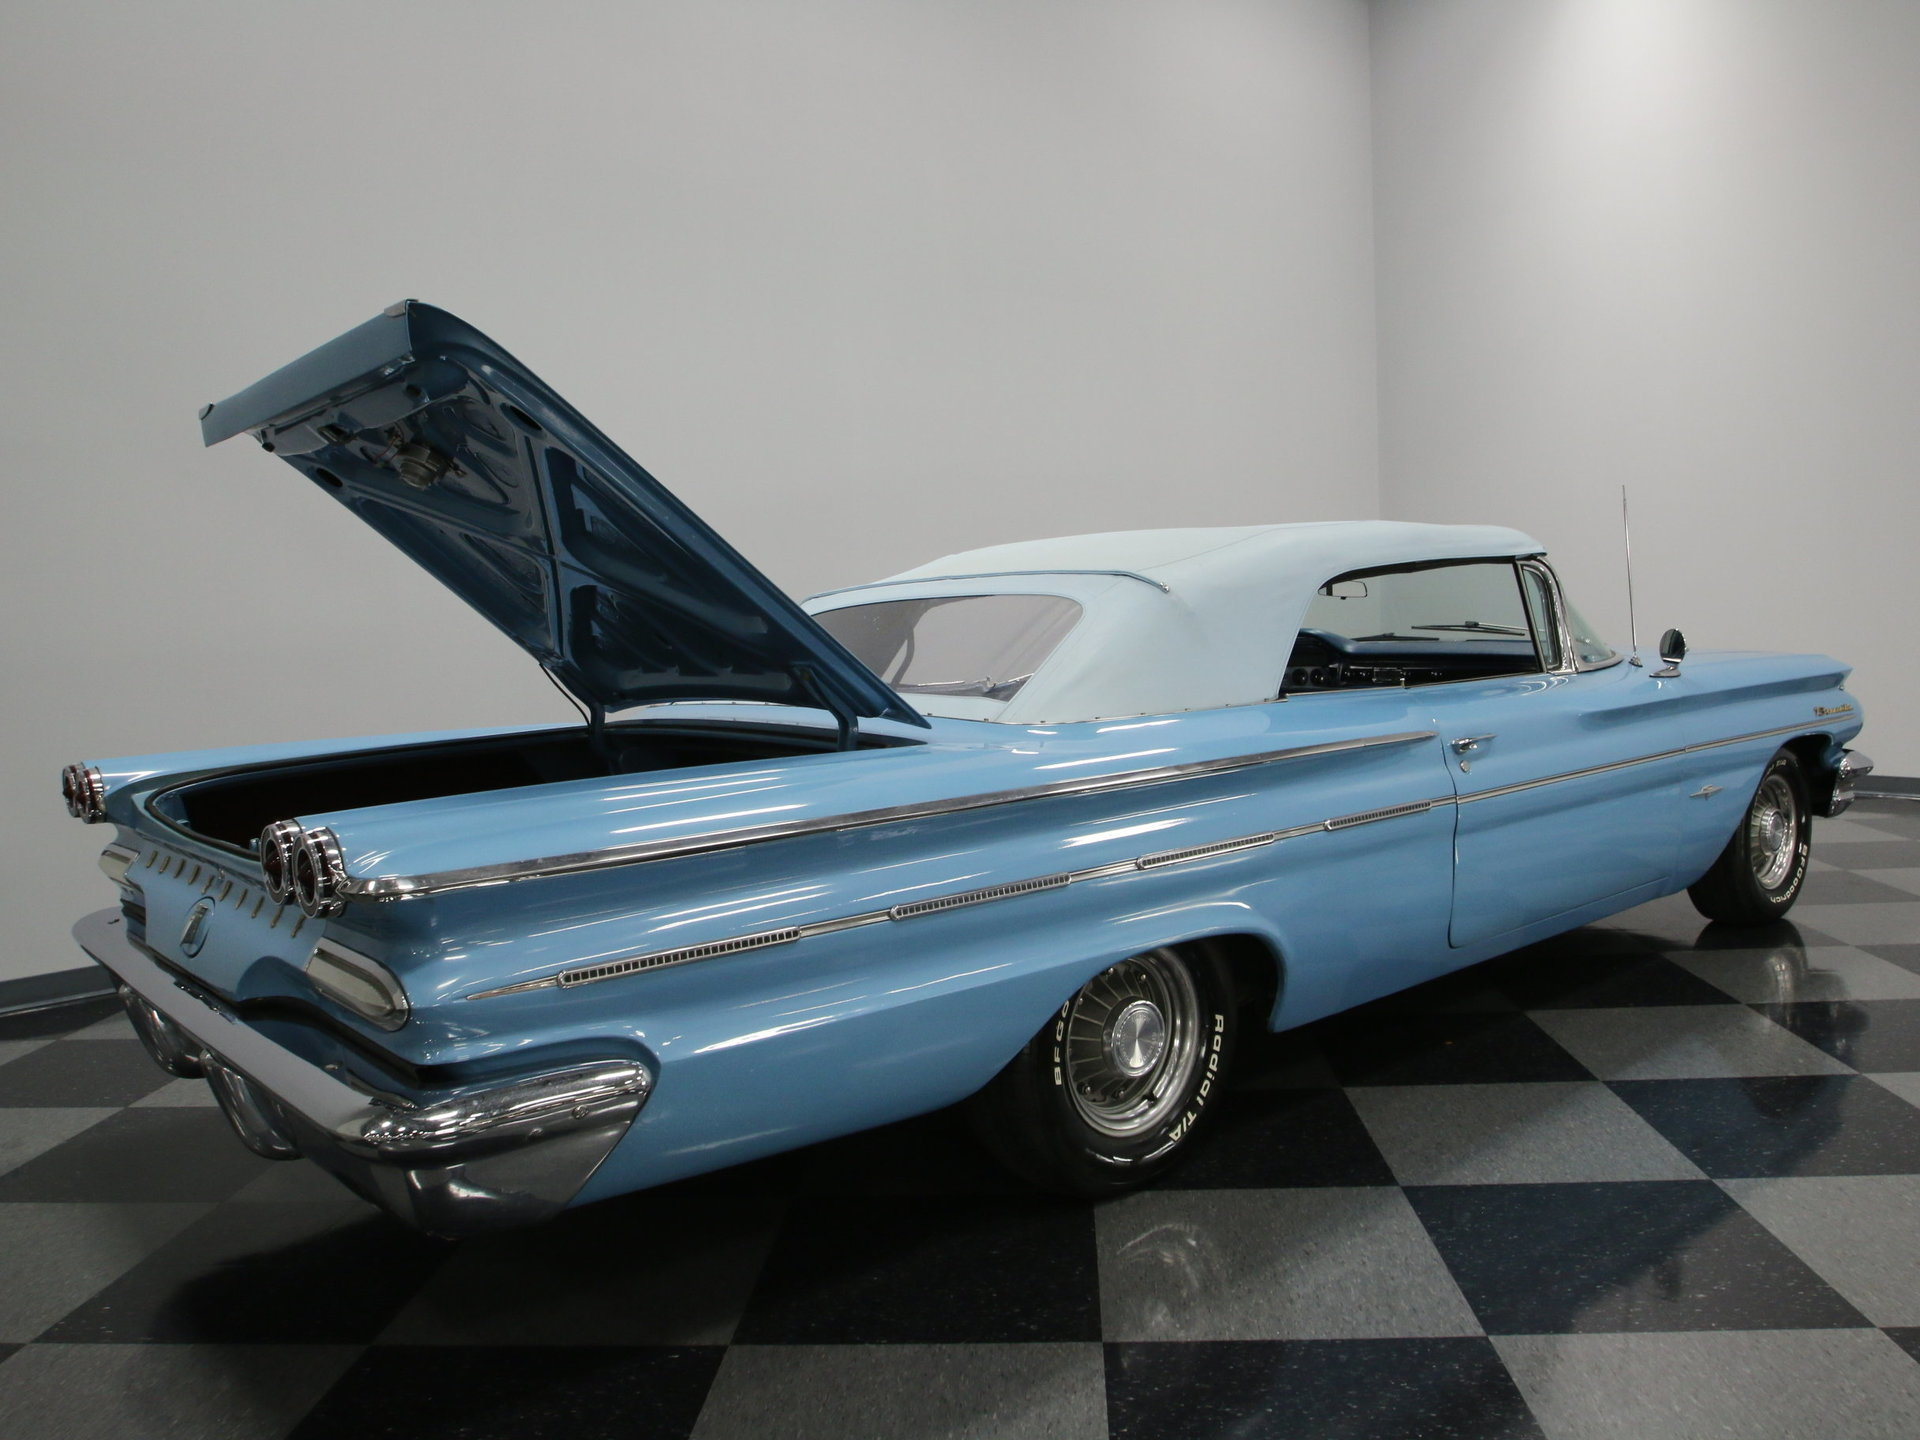 1960 Pontiac Bonneville Streetside Classics The Nations Trusted Station Wagon View 360